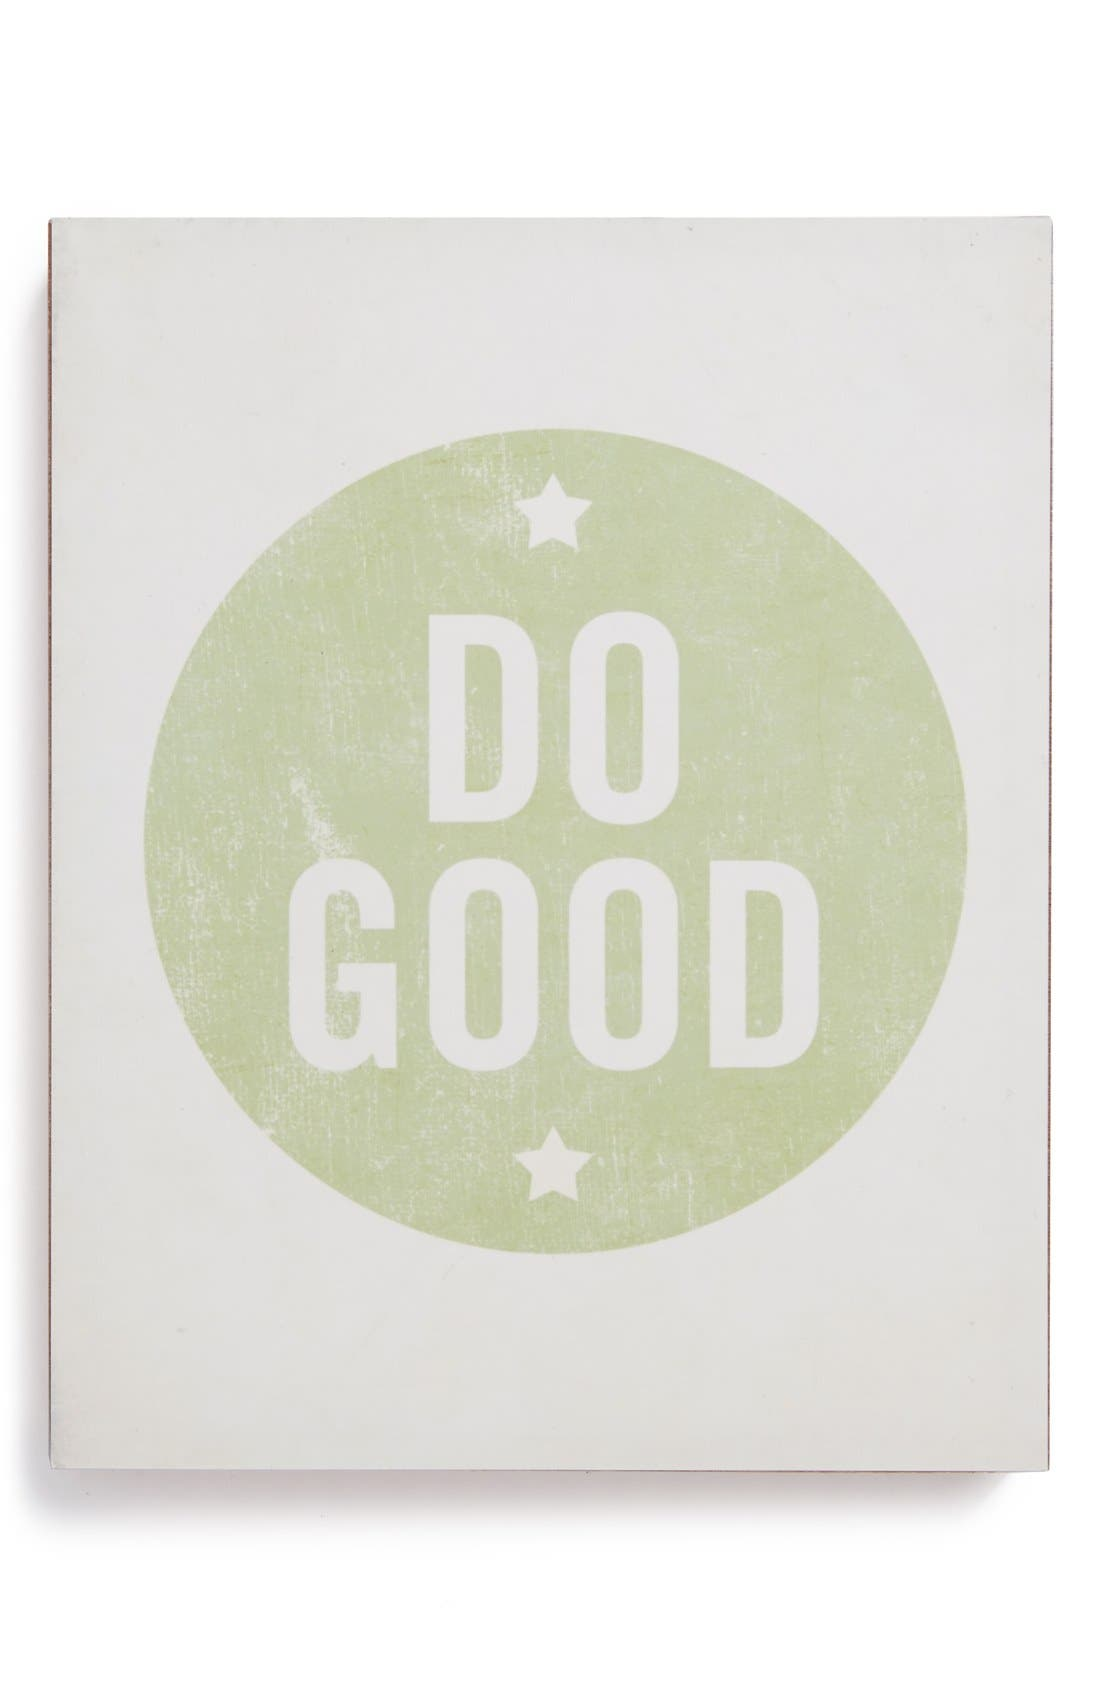 Alternate Image 1 Selected - Lucius Designs 'Do Good' Wall Art